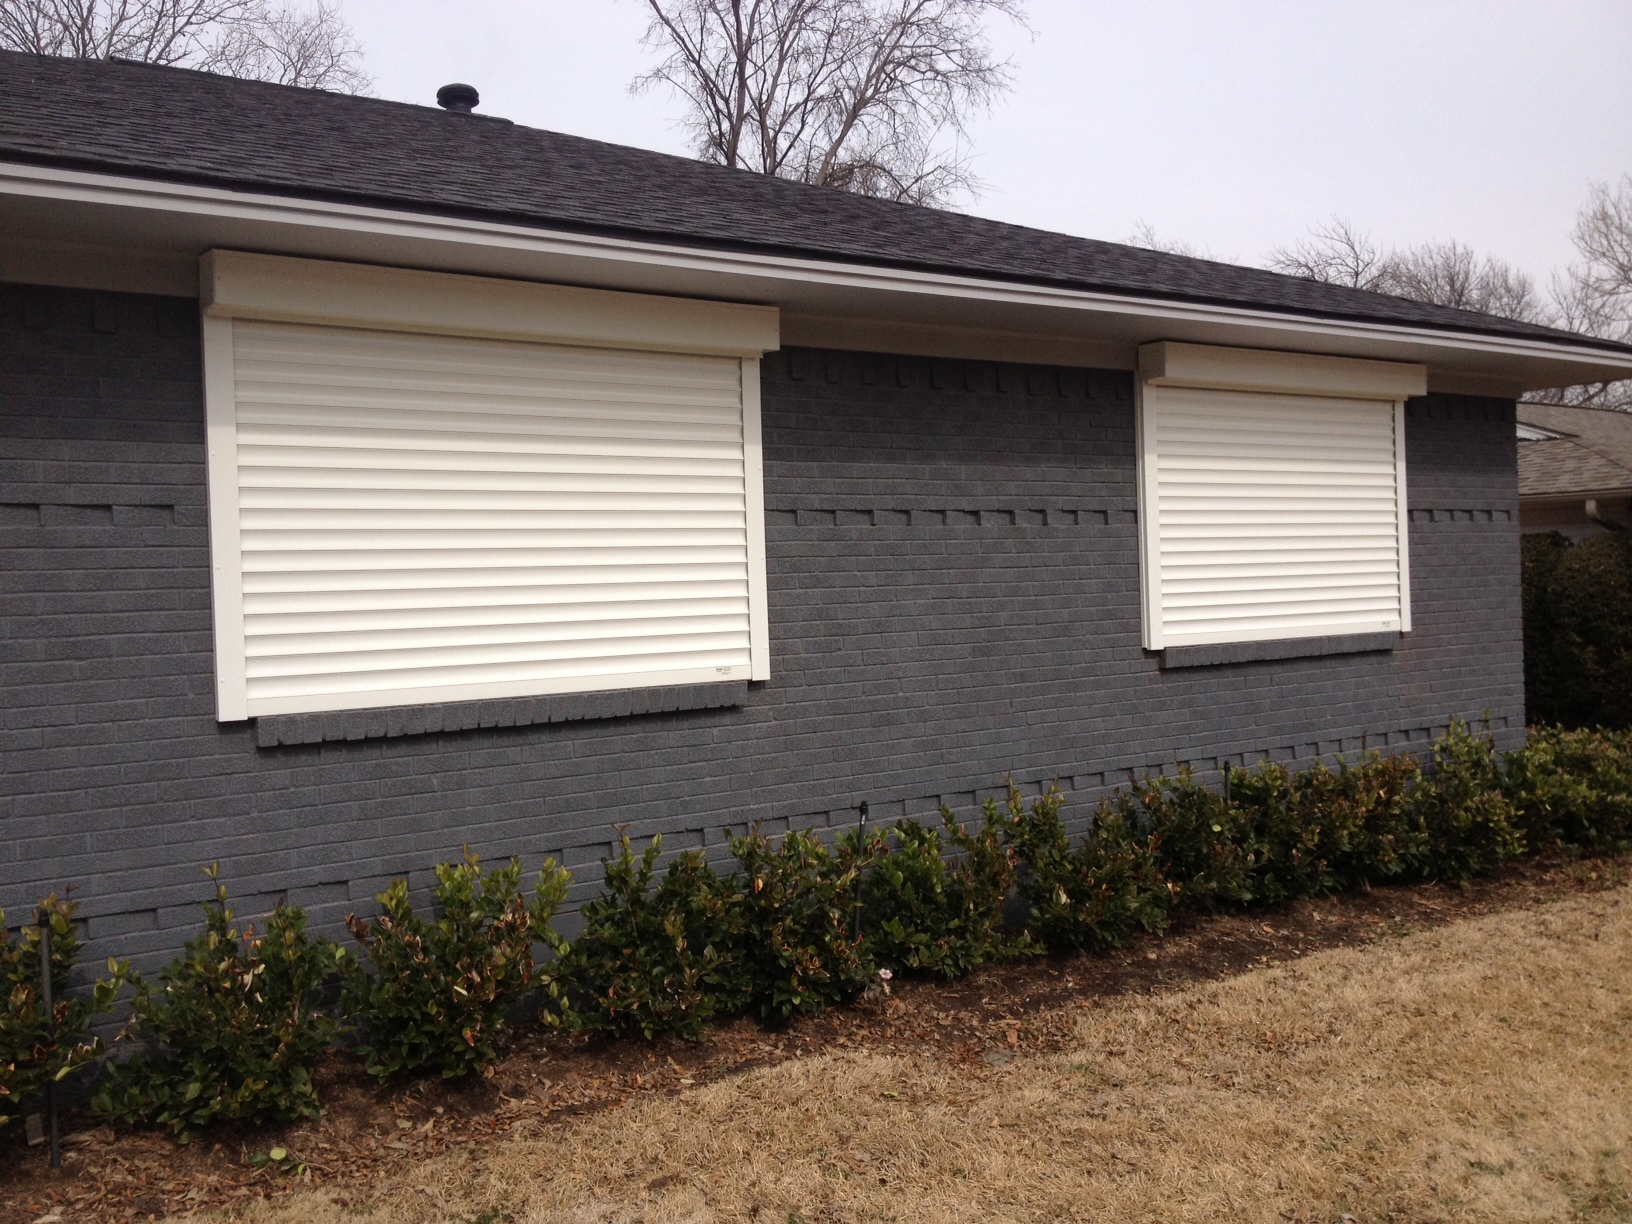 Security shutters screens and security blinds texas overhead door for Roll up window shutters exterior